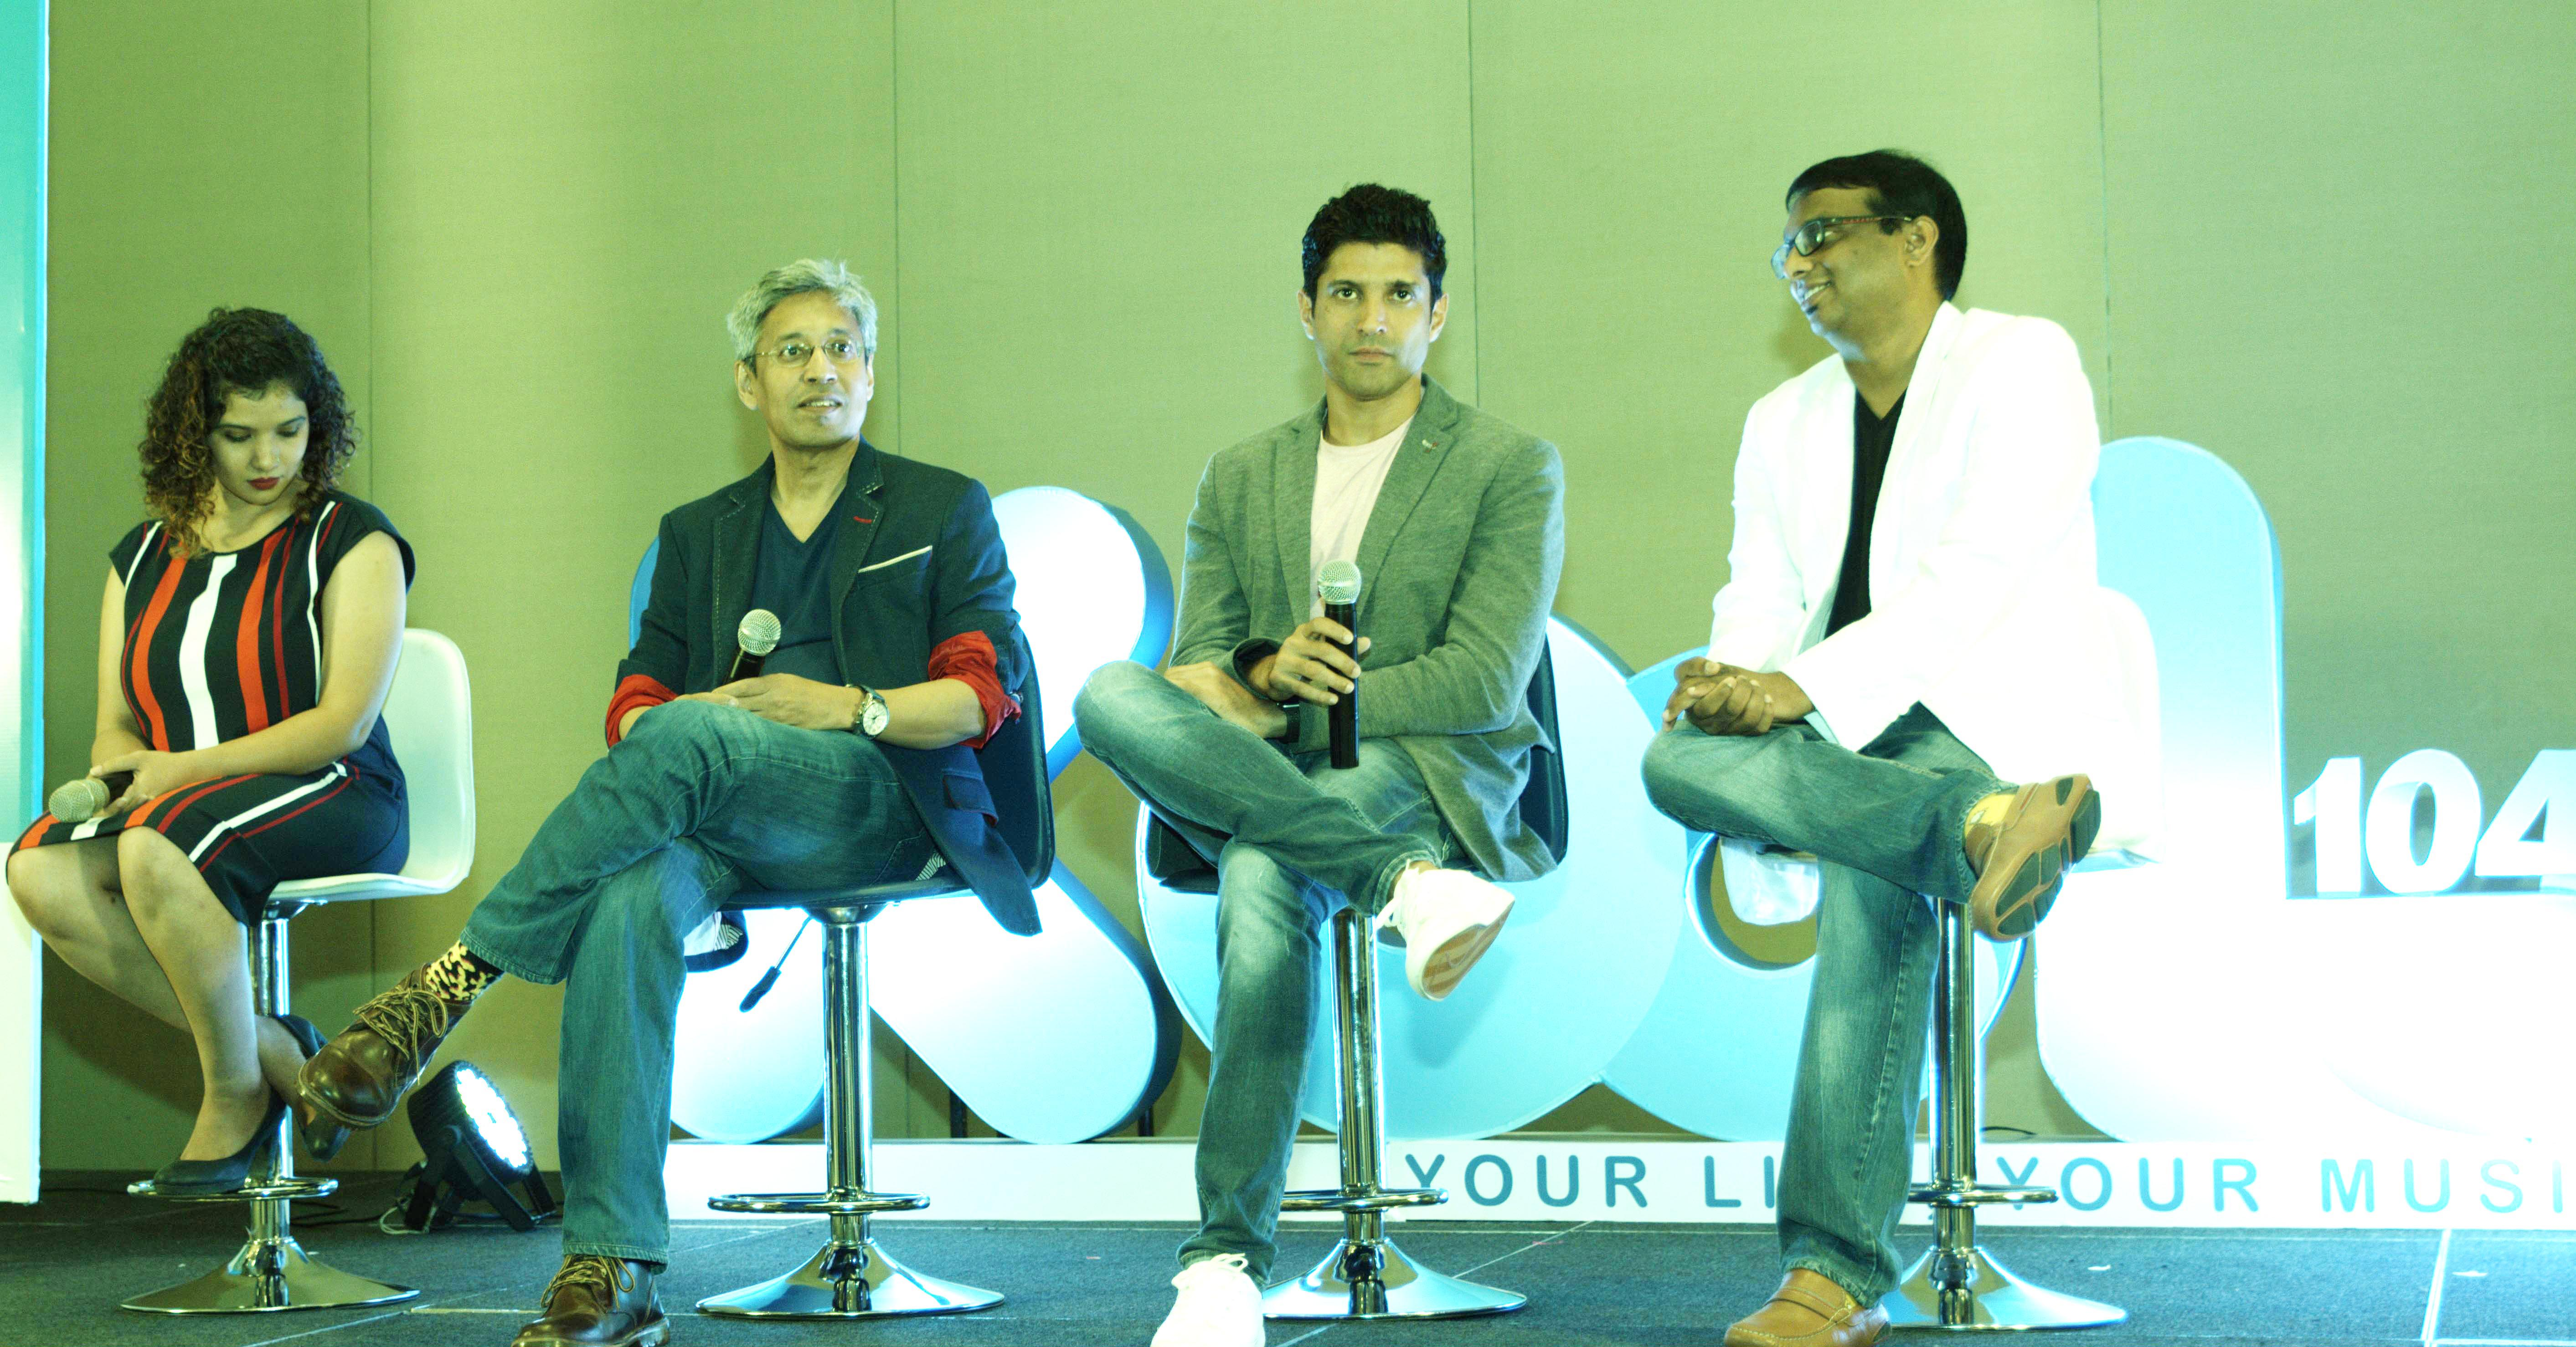 Farhan Akhtar launches Kool 104 Radio Station in Hyderabad!